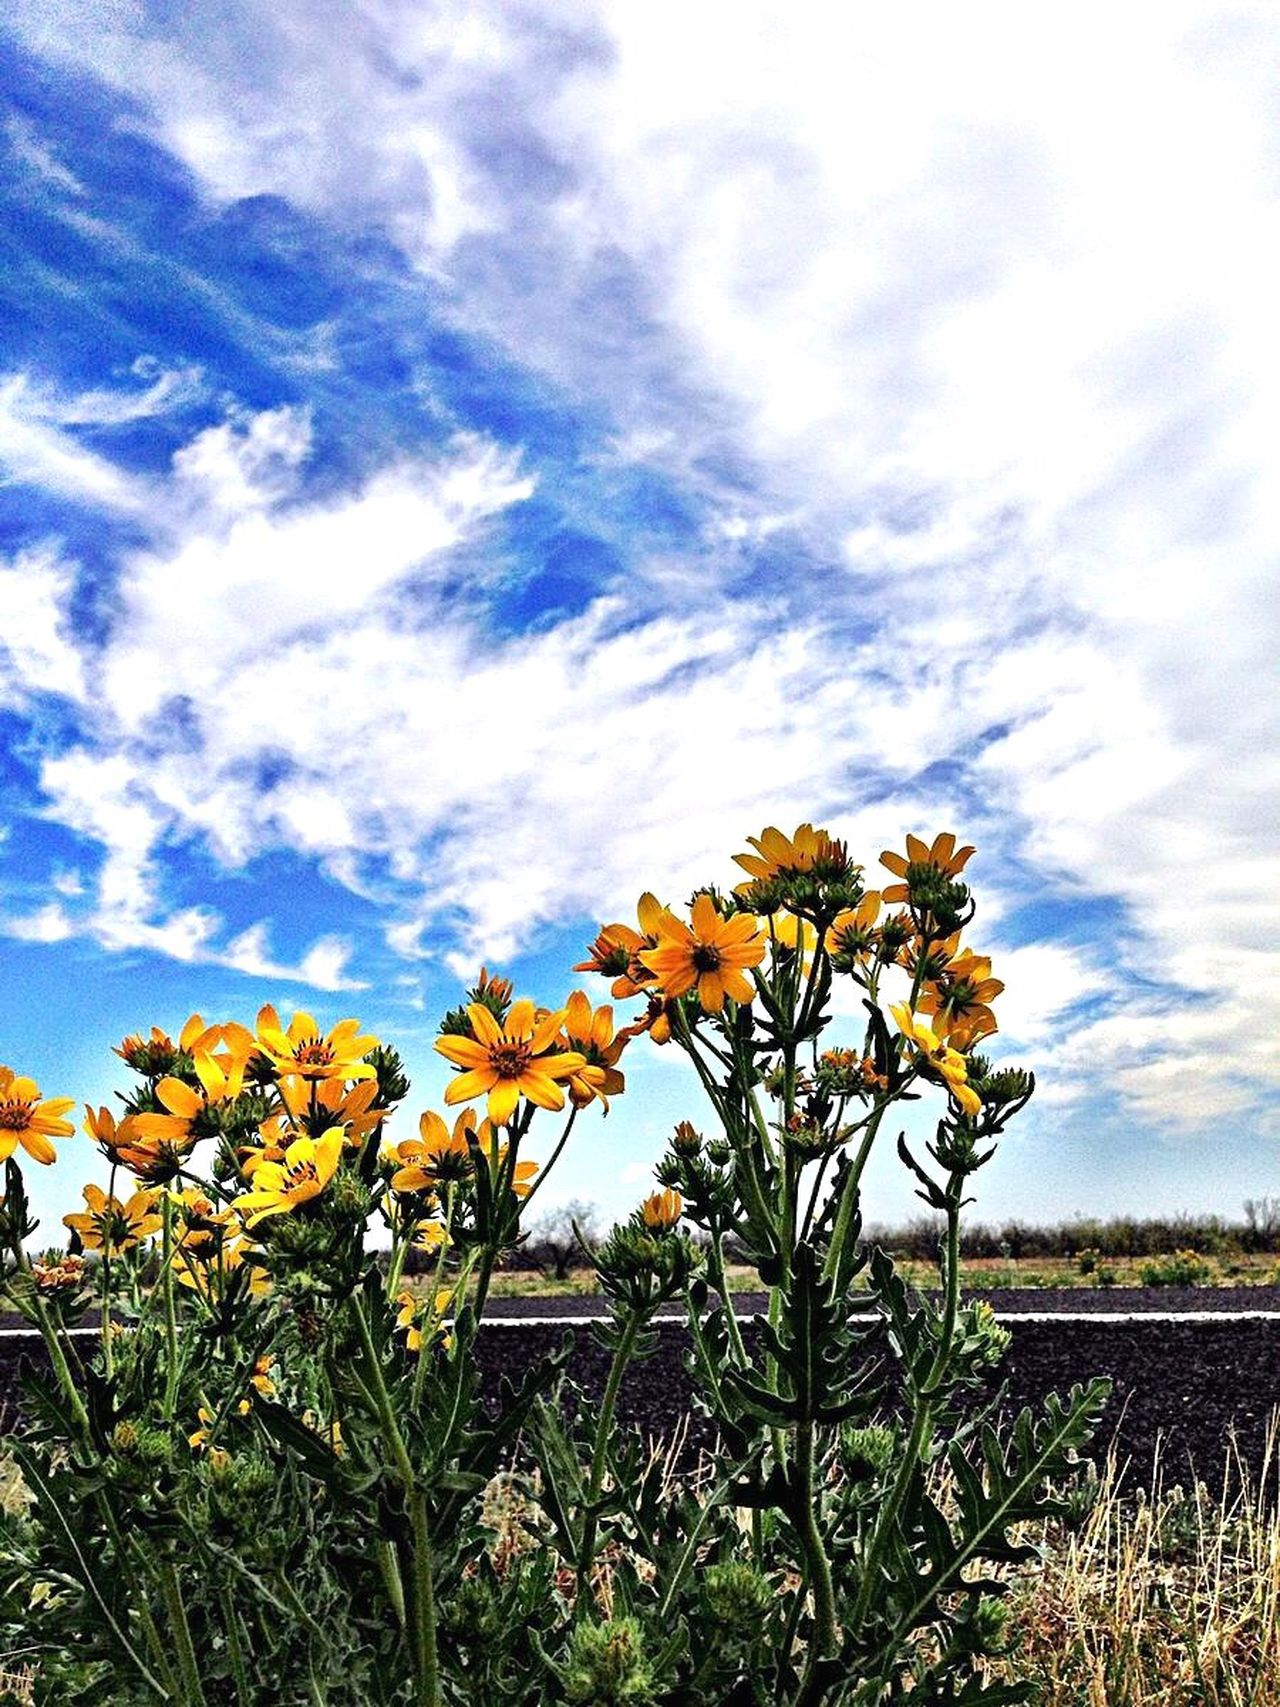 Flower Growth Nature Beauty In Nature Sky Cloud - Sky Fragility Texas Roadside Texas Landscape 3XSPUnity Spring Flowers Texas Wildflowers Field Petal Day No People Low Angle View Freshness Flower Head Outdoors Blooming Yellow Tranquility Close-up